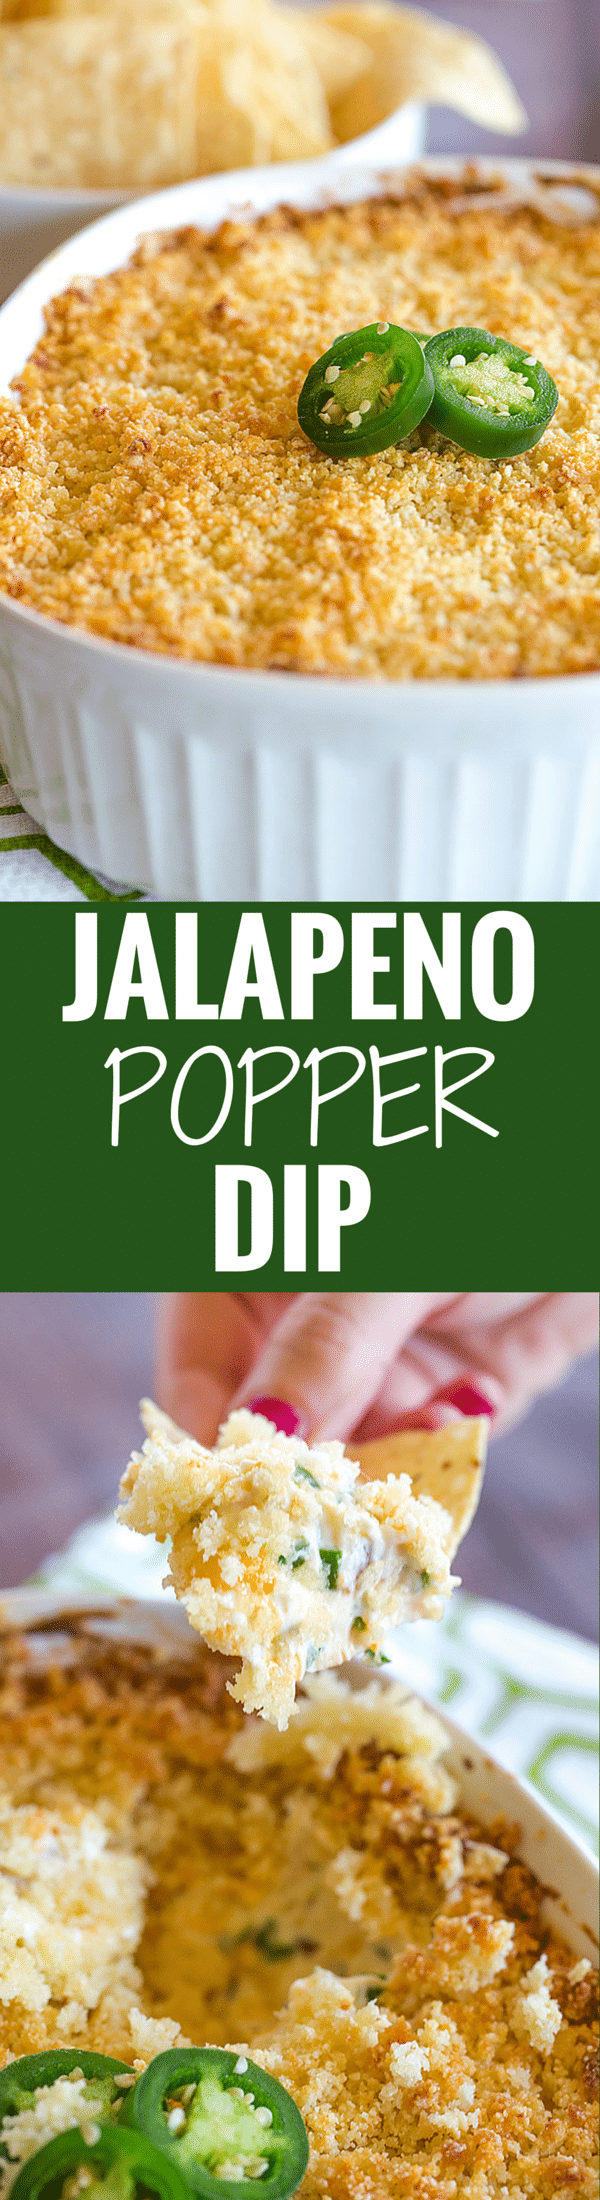 Jalapeno Popper Dip is creamy, cheesy and has just the perfect amount of kick. Great for your next party or watching the big game!